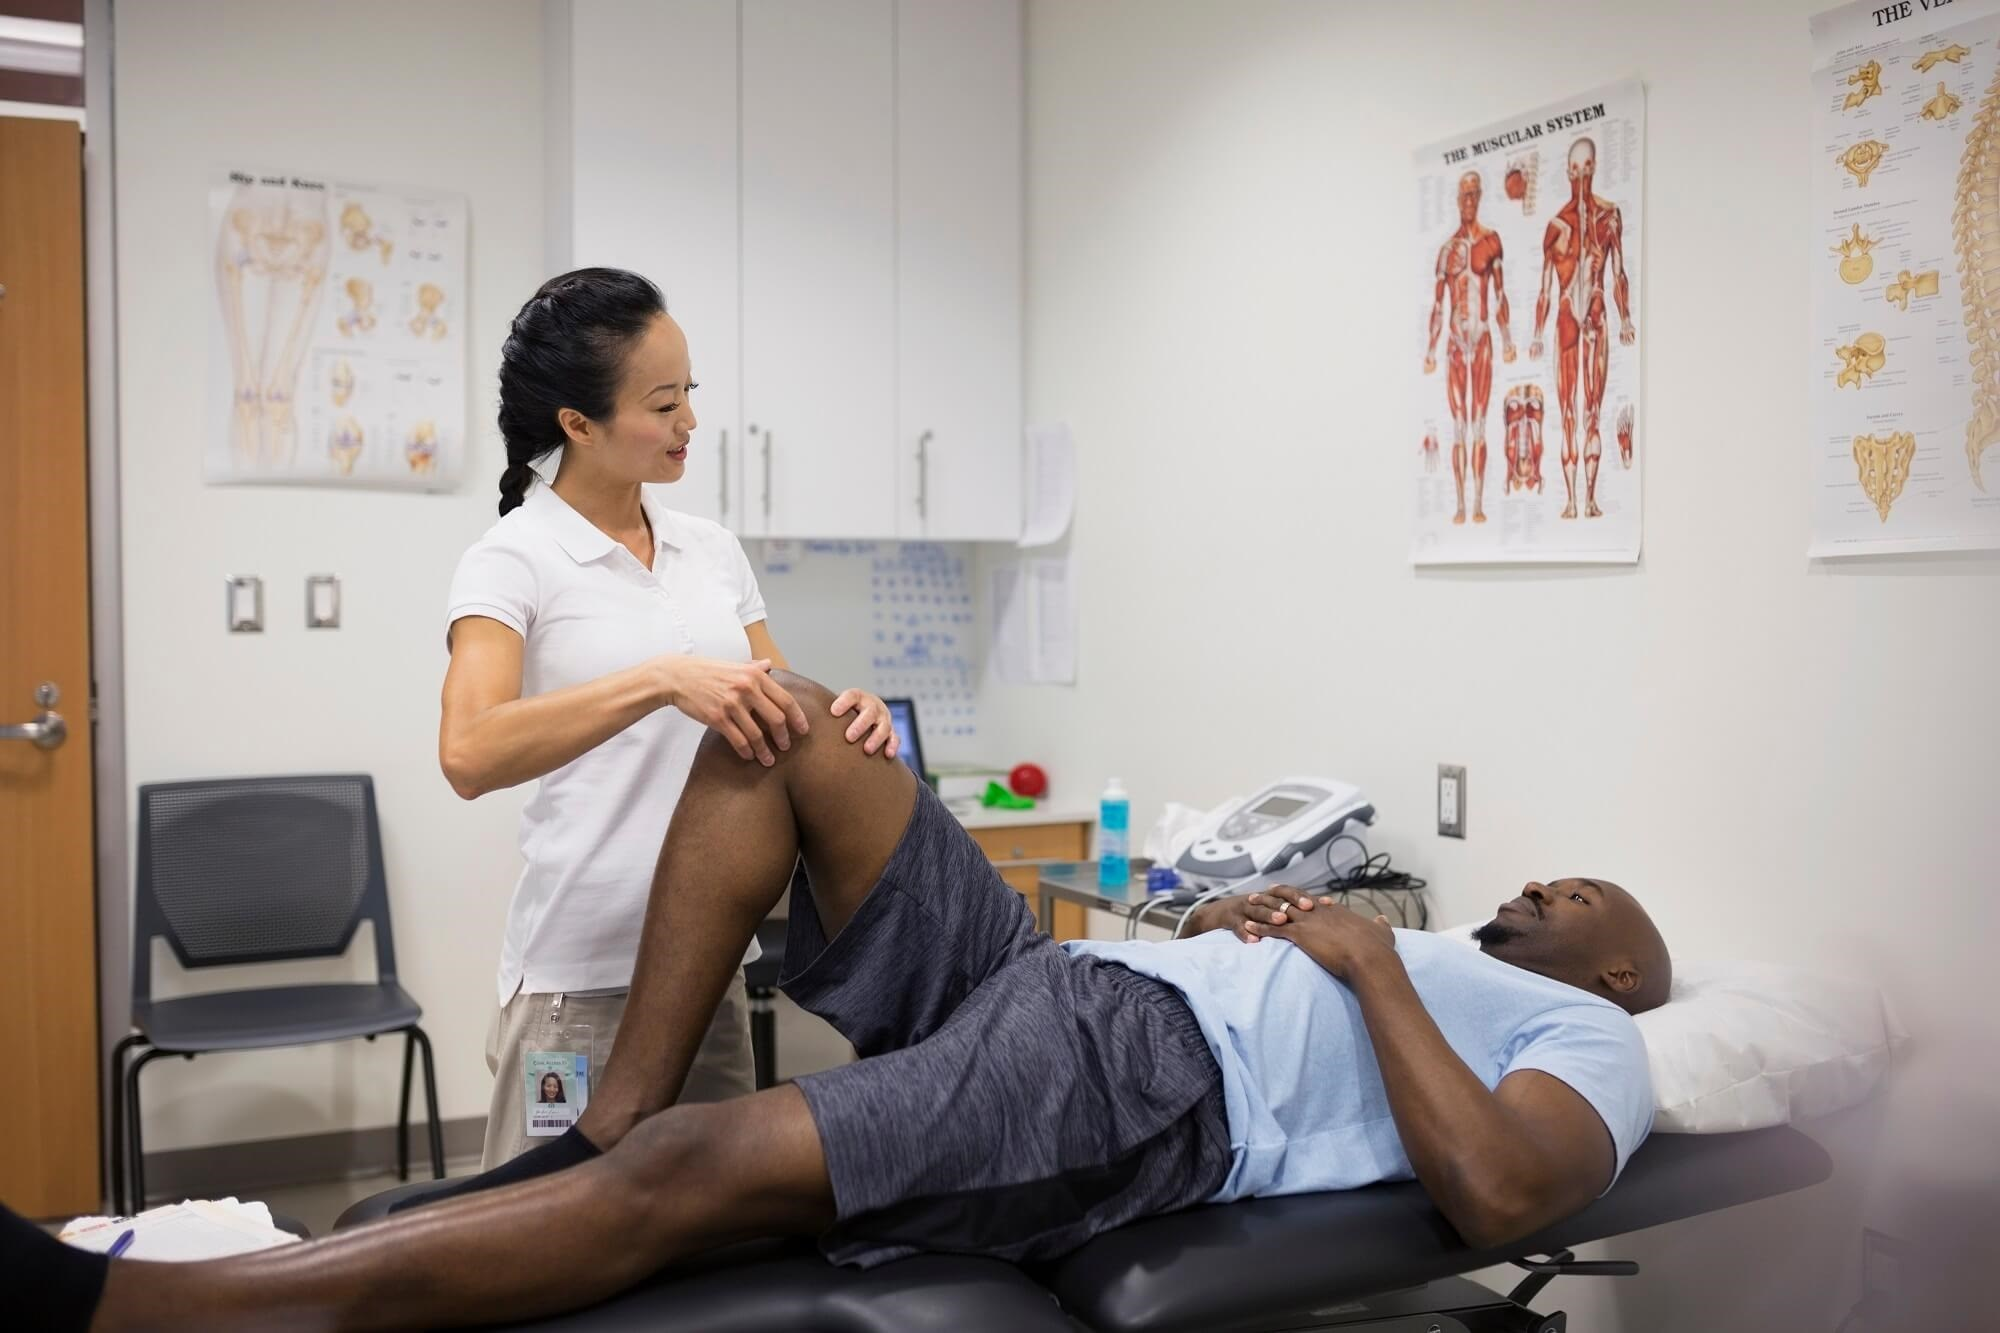 Weekly massage sessions may provide short-term symptom relief for patients with knee osteoarthritis, but the benefit is not maintained over 1 year of follow-up.